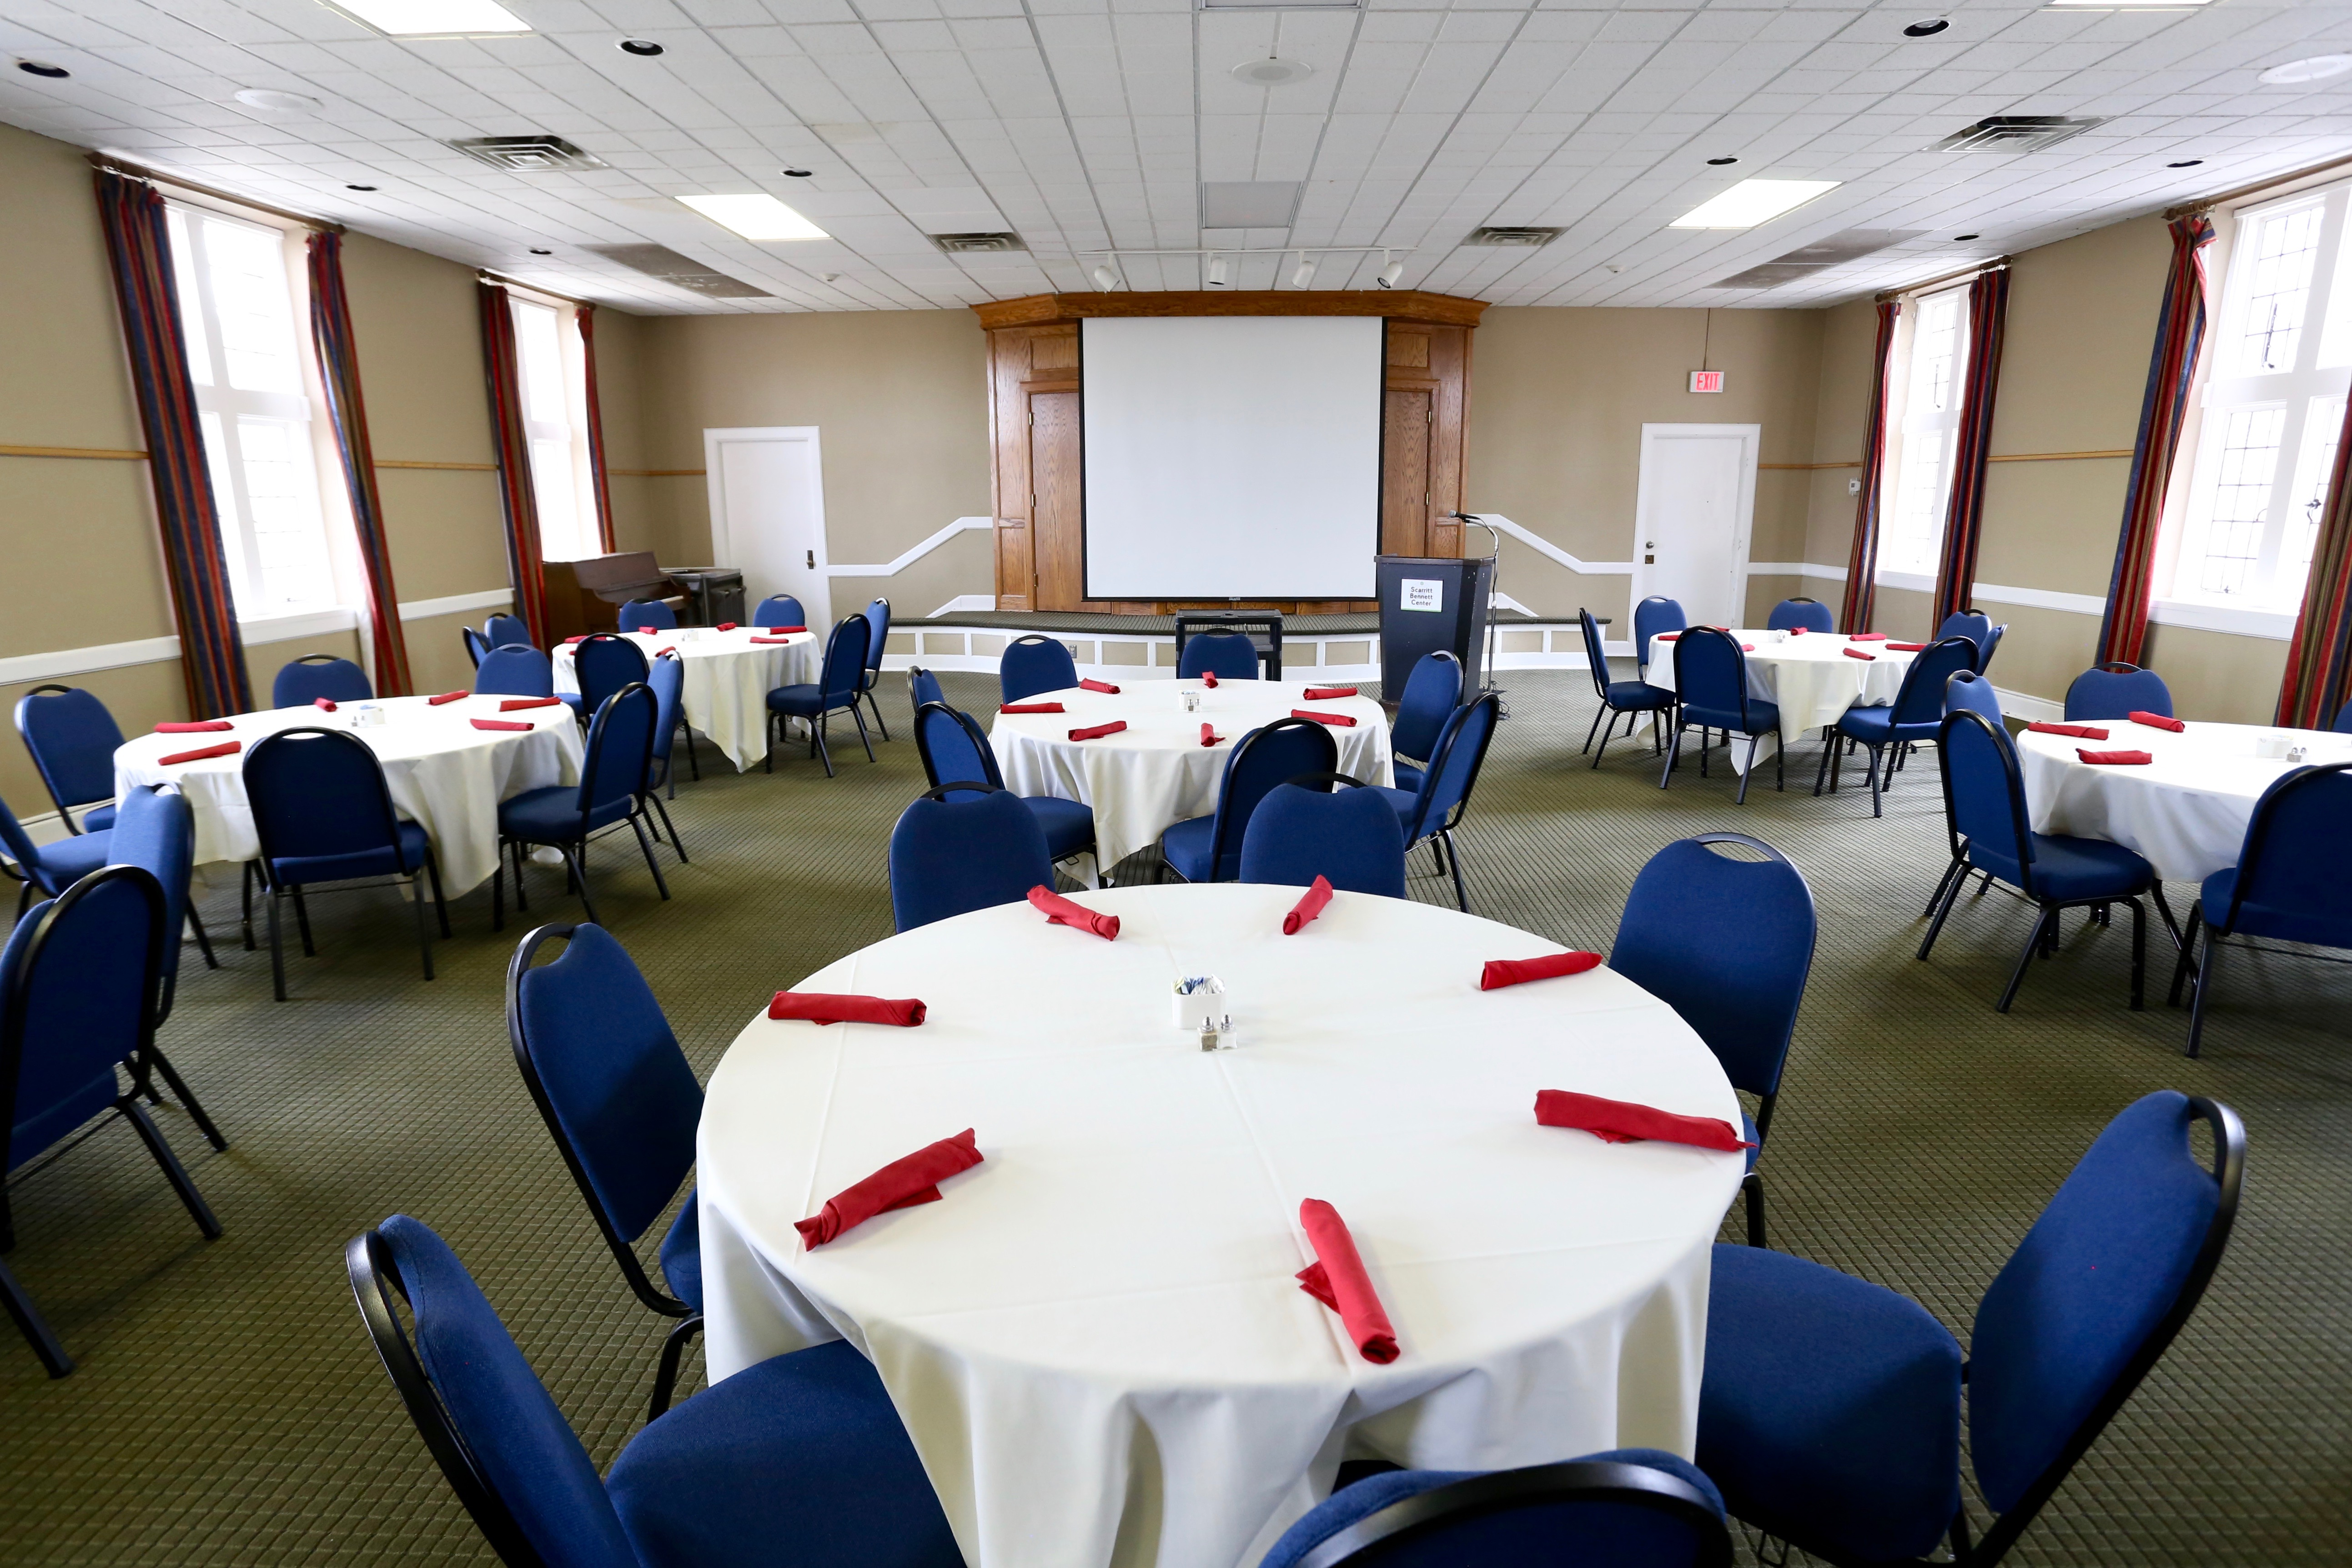 Large room with round tables, stage